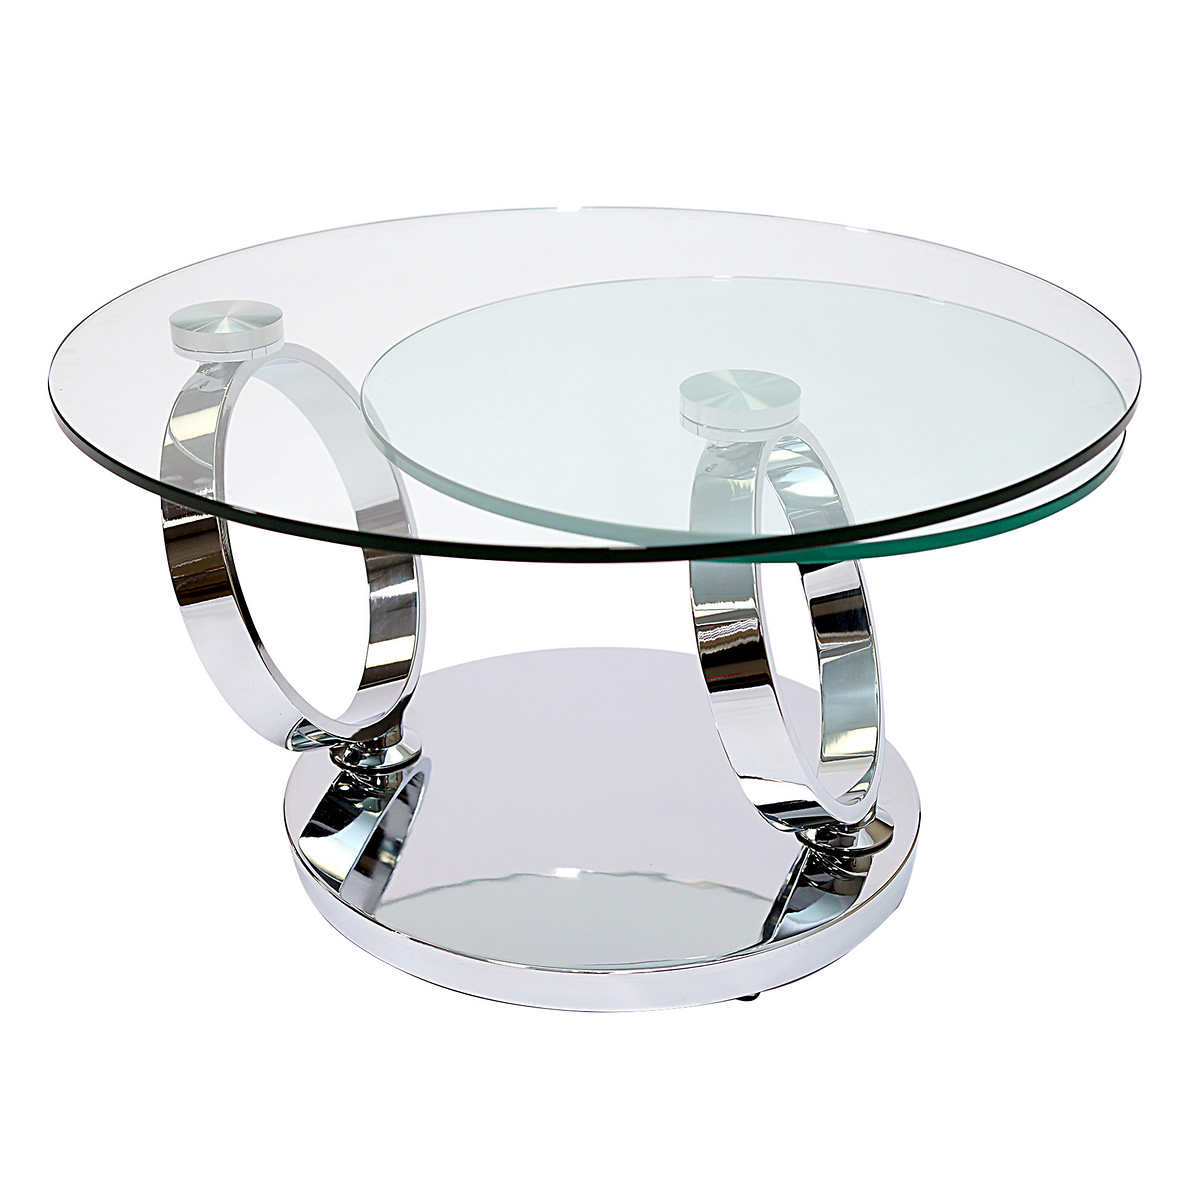 carrara glass coffee table service furniture end tables apus repainting wood made from wooden pallets sofa dining ashley chair and ott portable dog crate uttermost genell modern